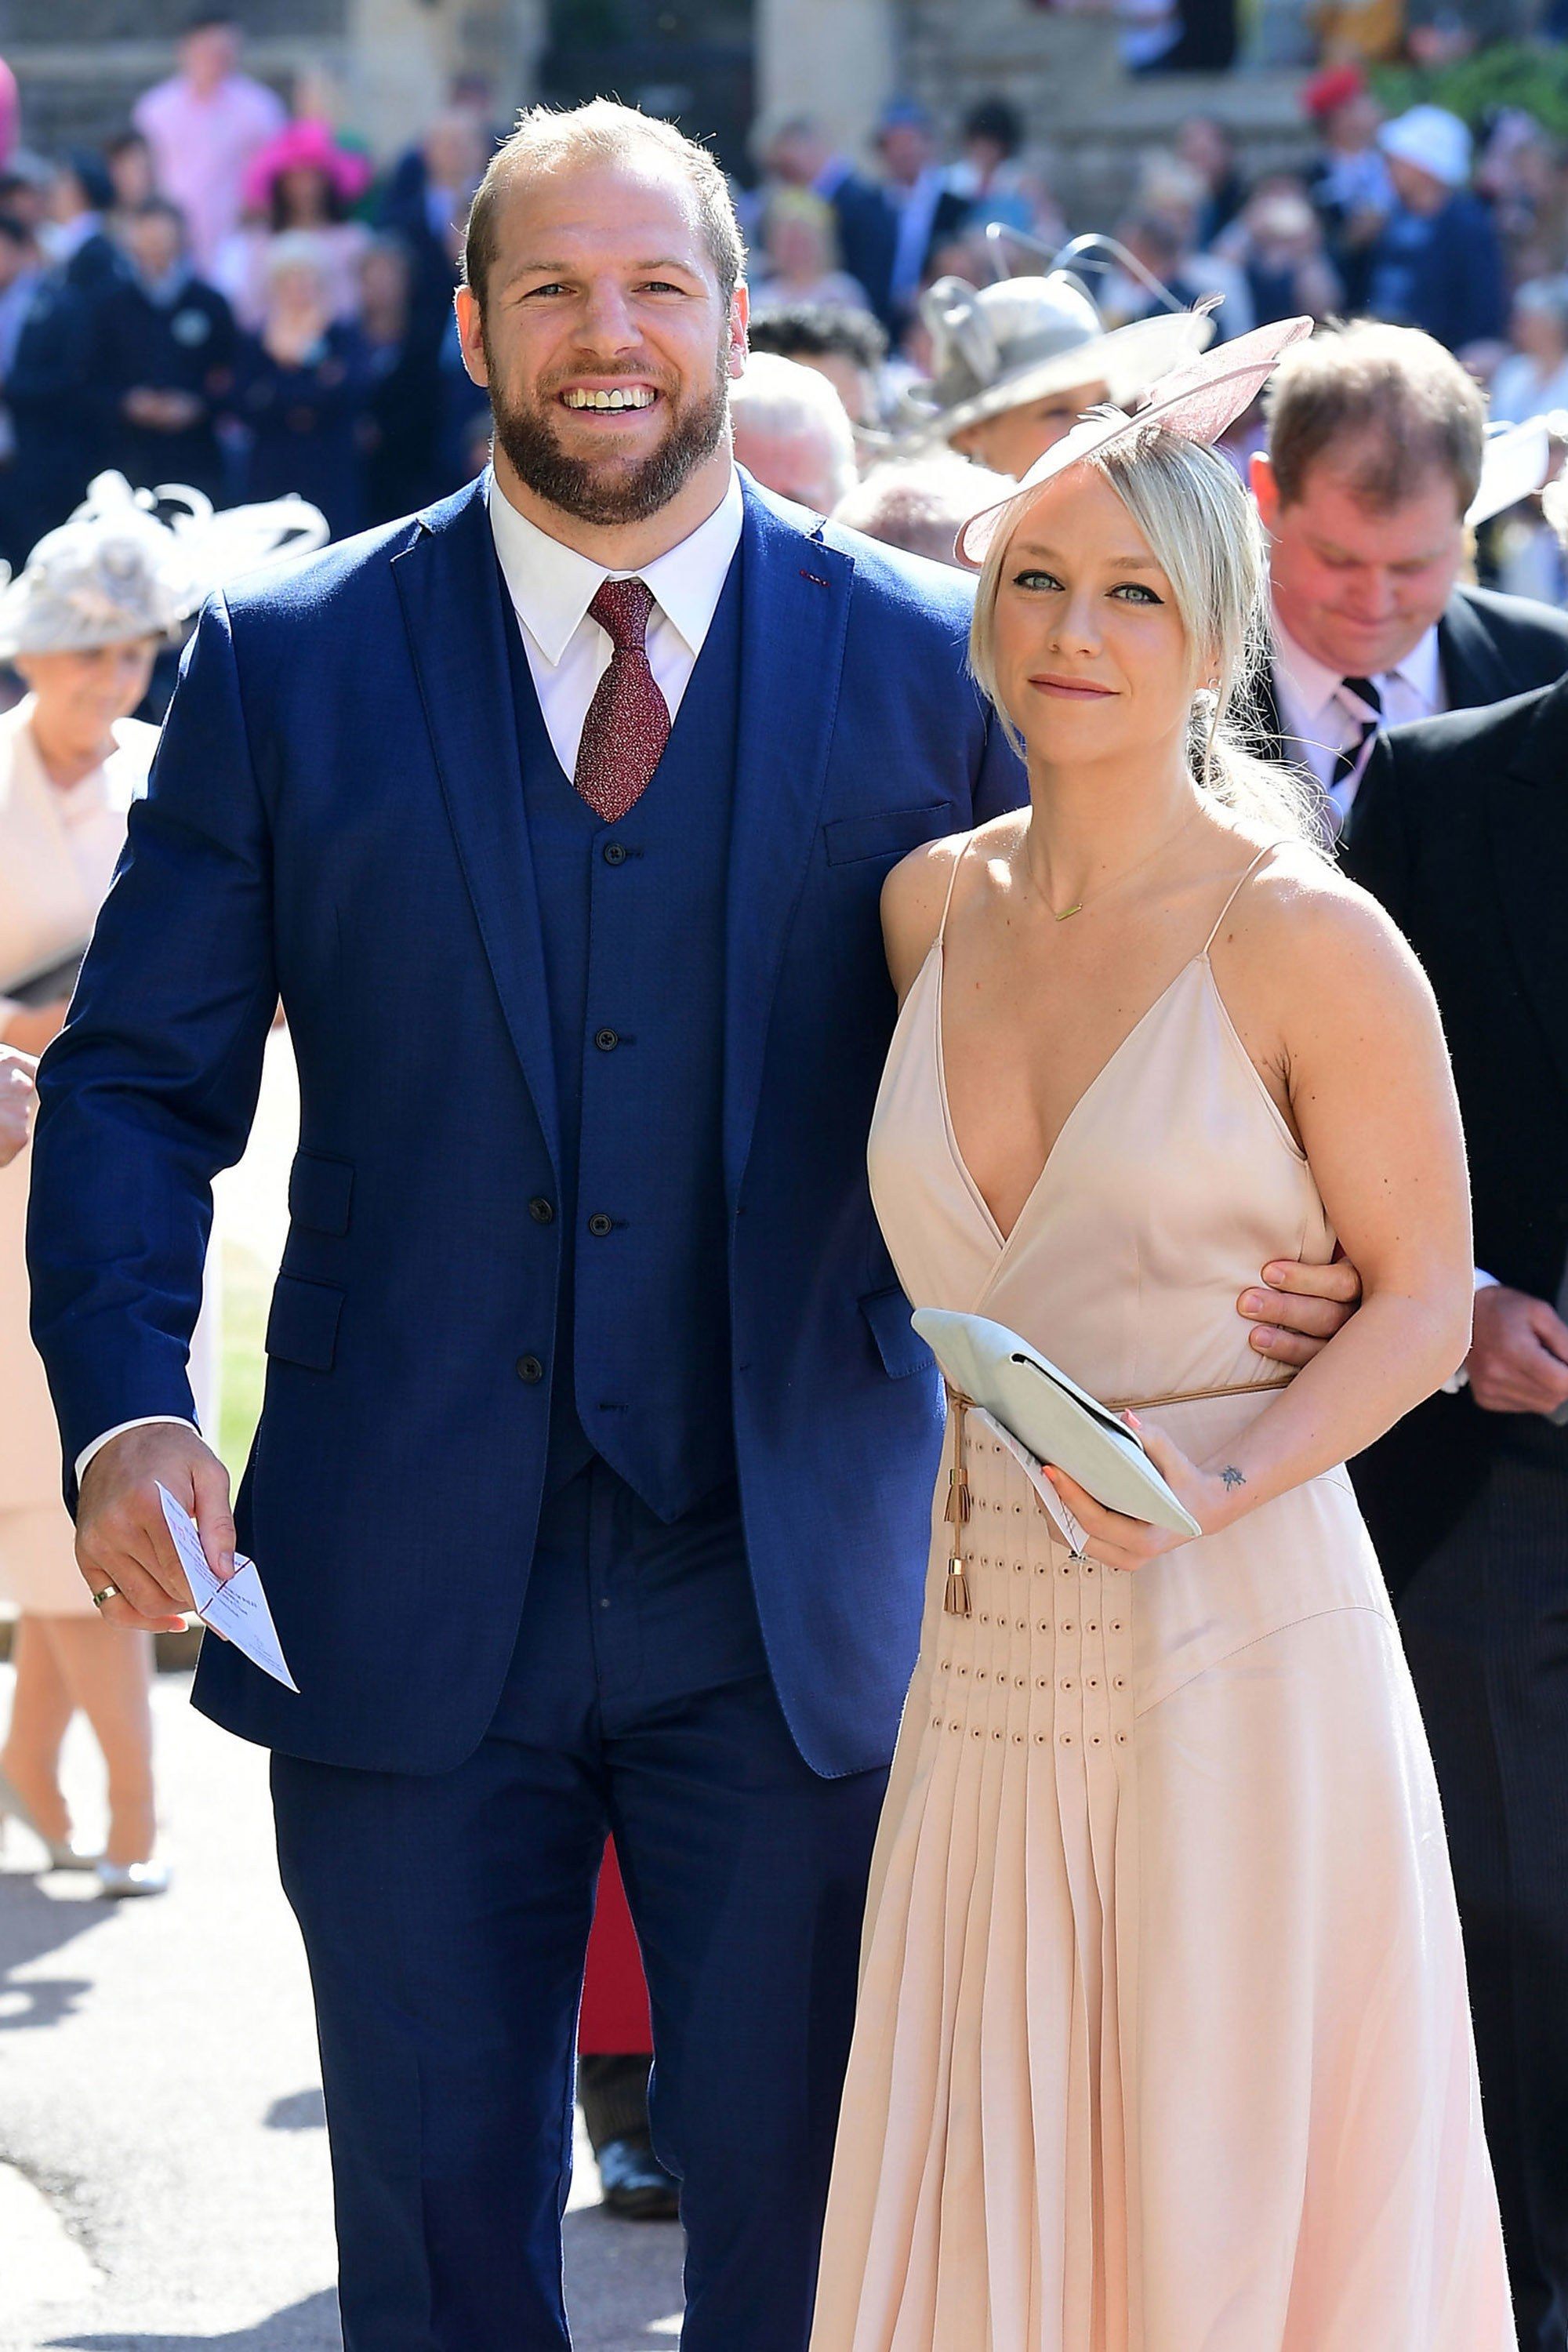 https://i0.wp.com/styleblog.ca/wp-content/uploads/2018/05/harry-meghan-royal-wedding-James-Haskell-and-Chloe-Madeley.jpg